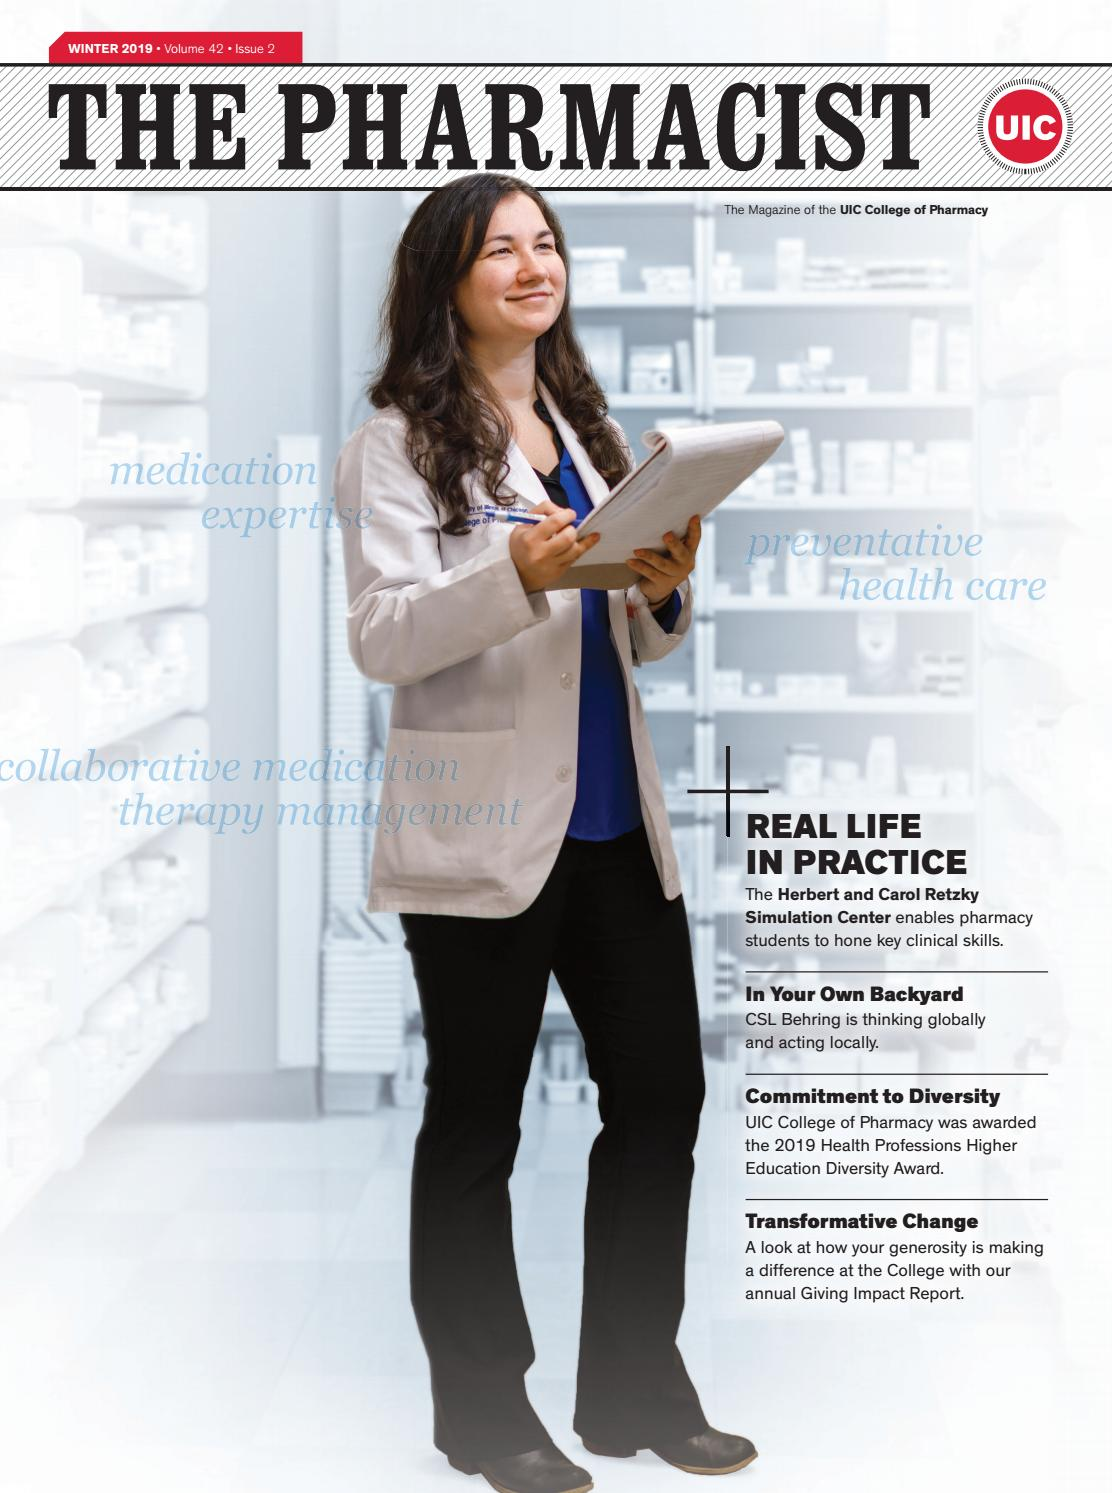 Uic Spring 2022 Calendar.The Pharmacist Winter 2020 By Uic College Of Pharmacy Issuu